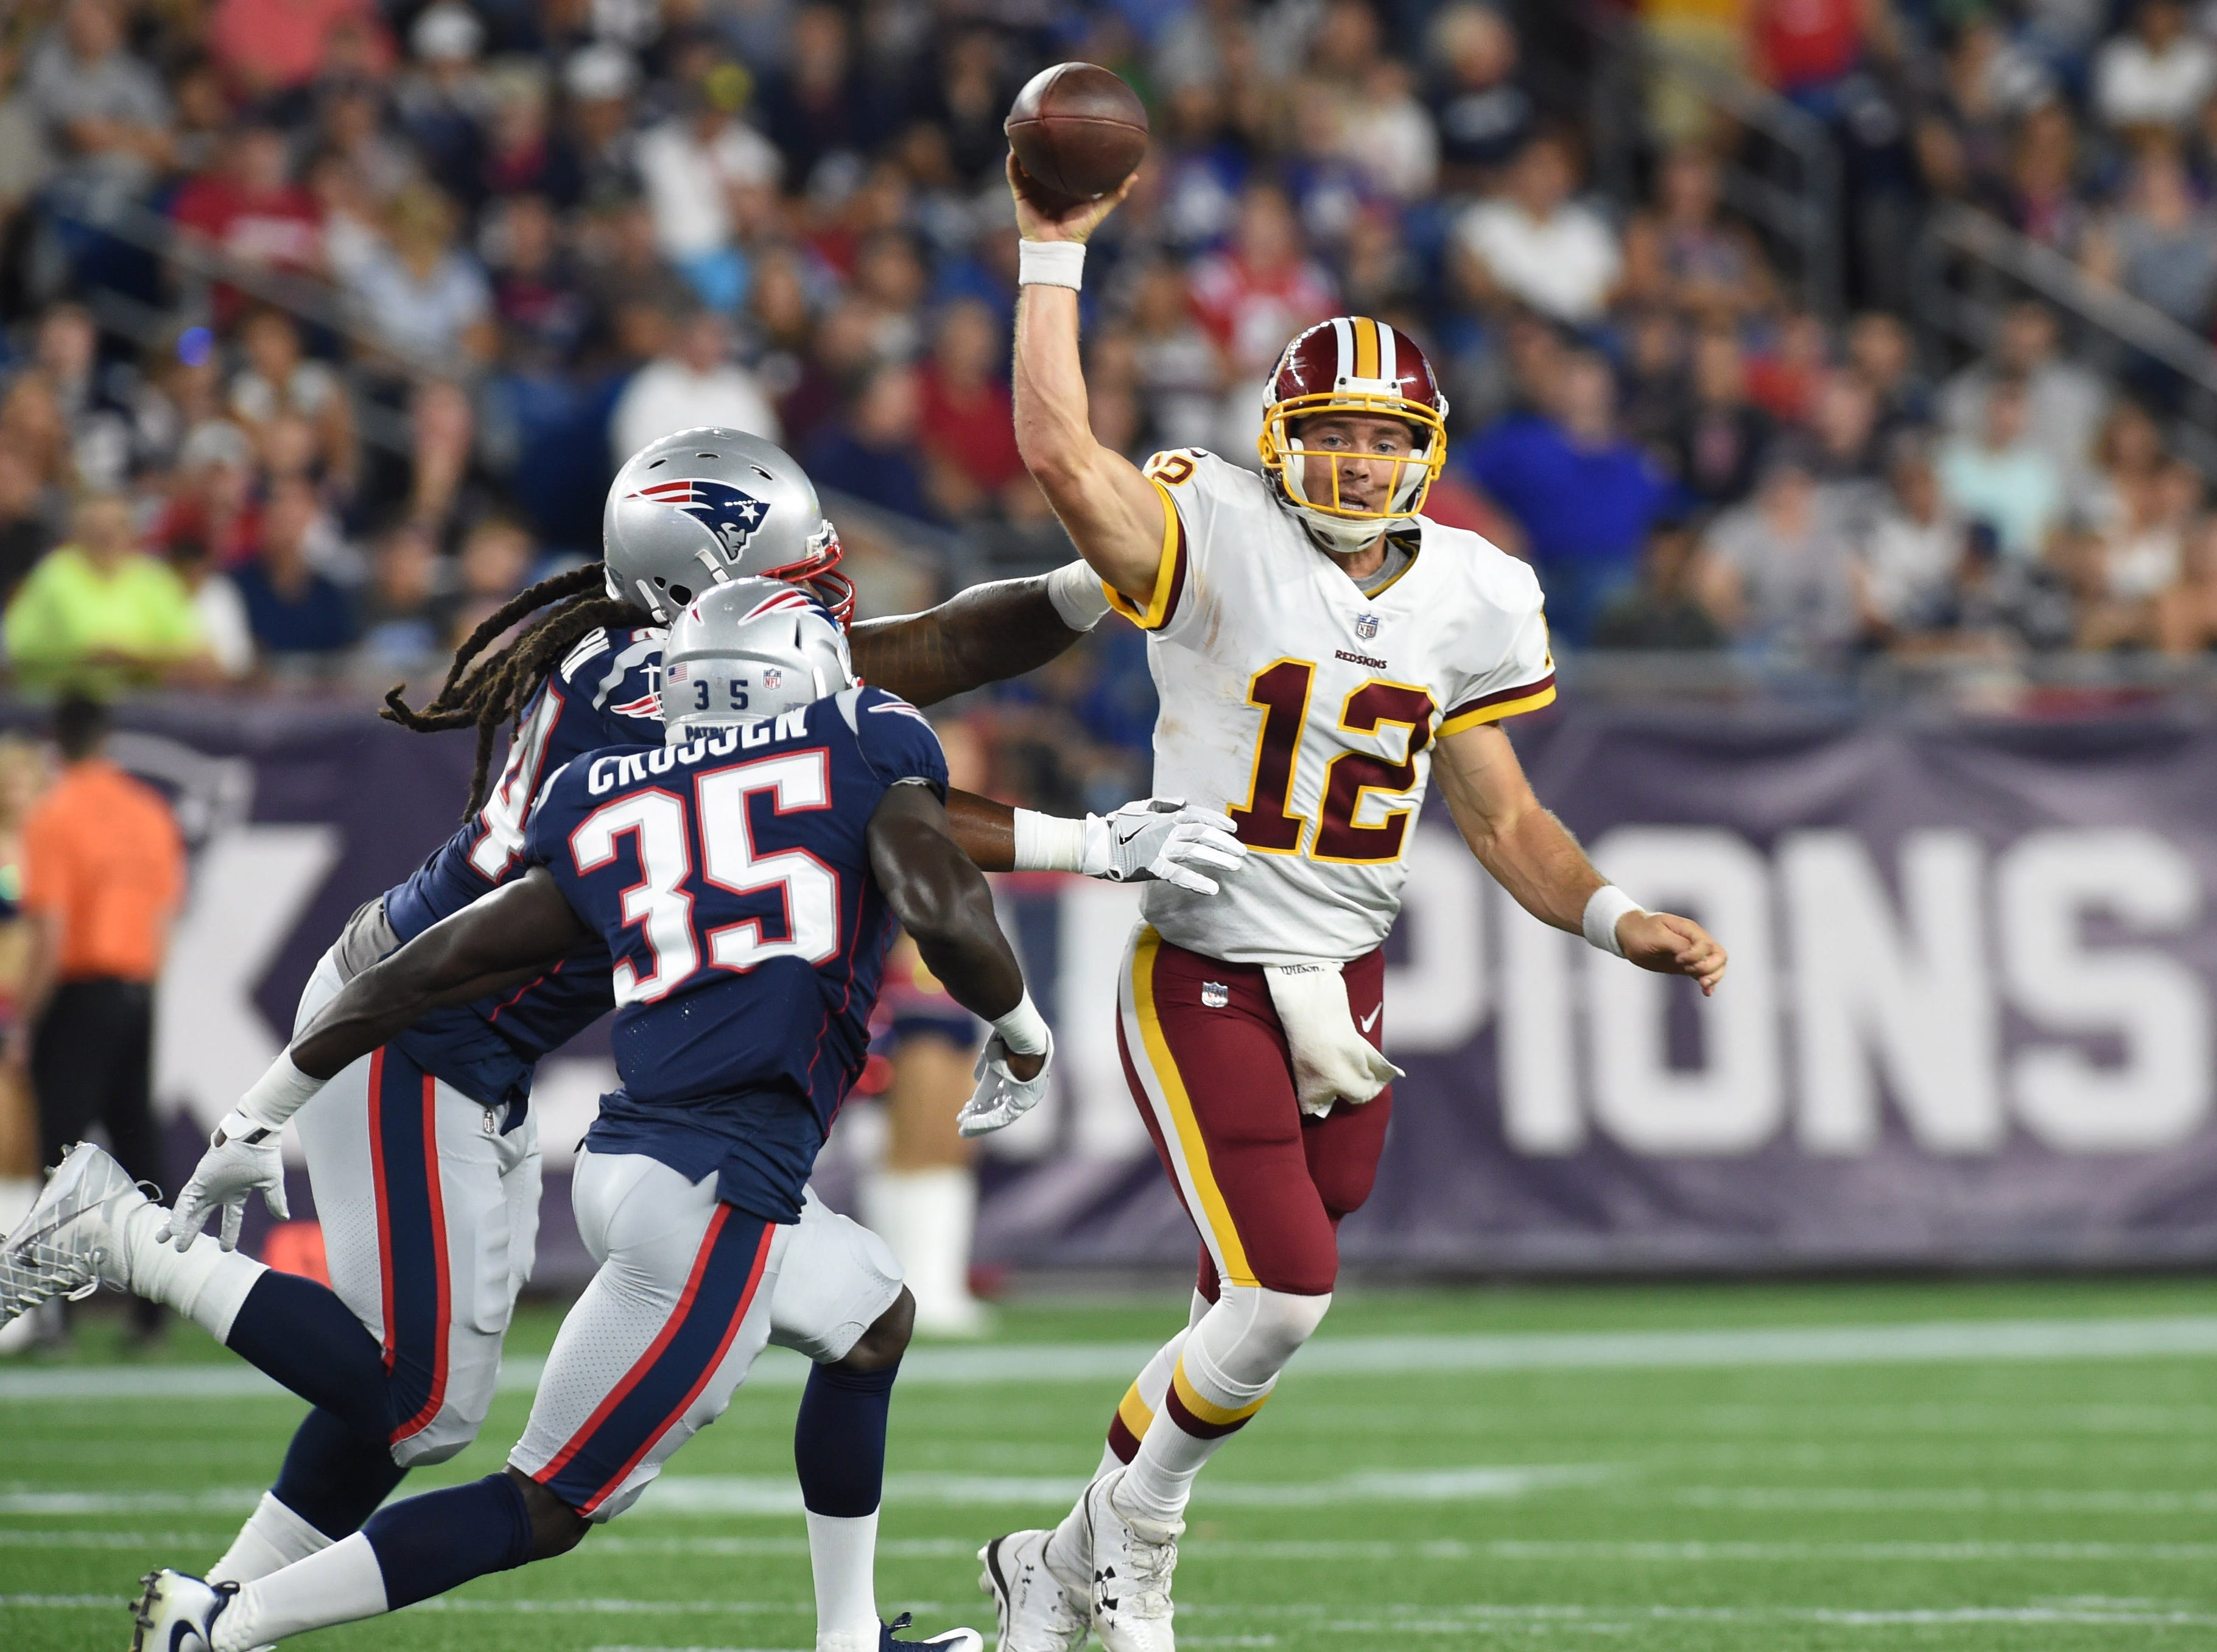 Aug 9, 2018; Foxborough, MA, USA; Washington Redskins quarterback Colt McCoy (12) throws the ball away while being pursued by New England Patriots defensive back Keion Crossen (35) during the first half at Gillette Stadium. Mandatory Credit: Bob DeChiara-USA TODAY Sports